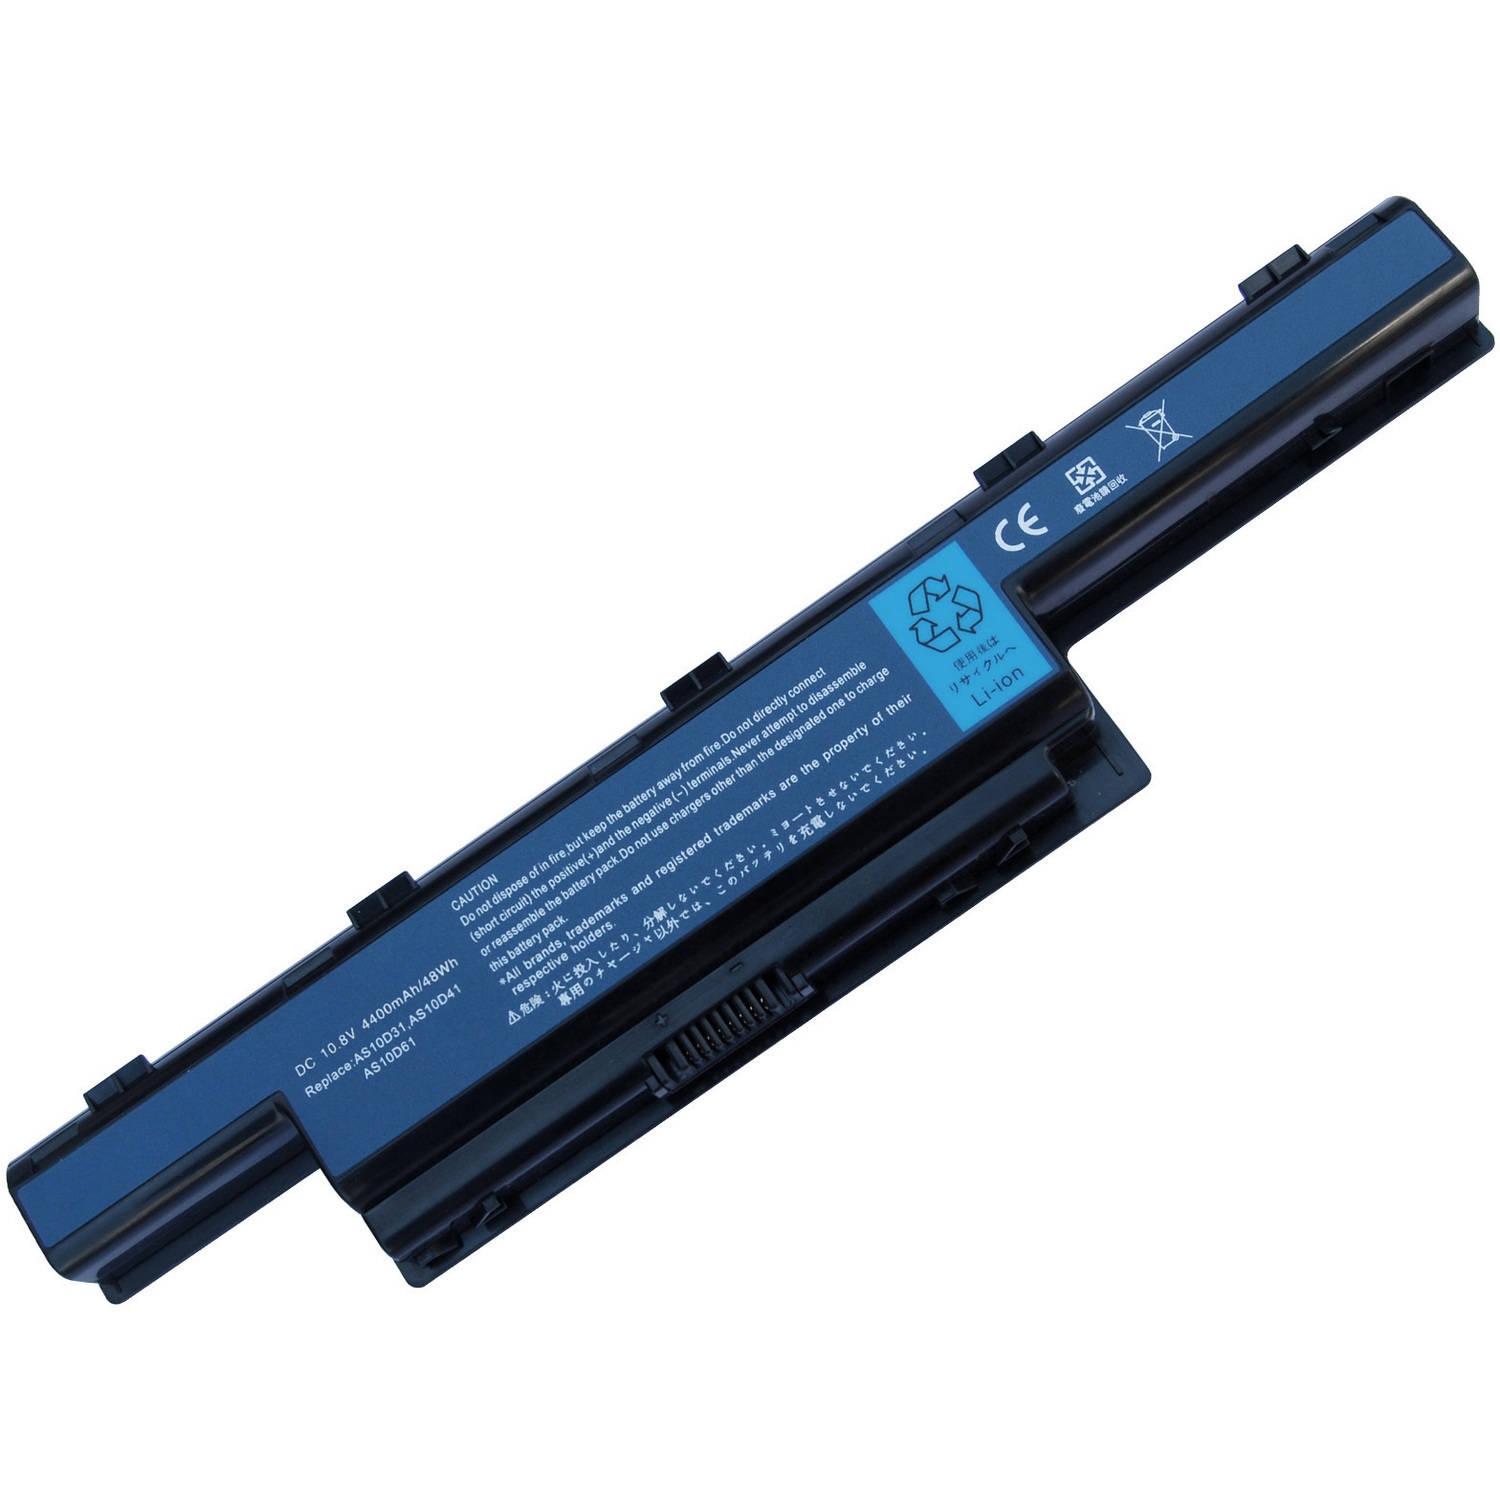 Acer Aspire 5551 Laptop Battery Replacement